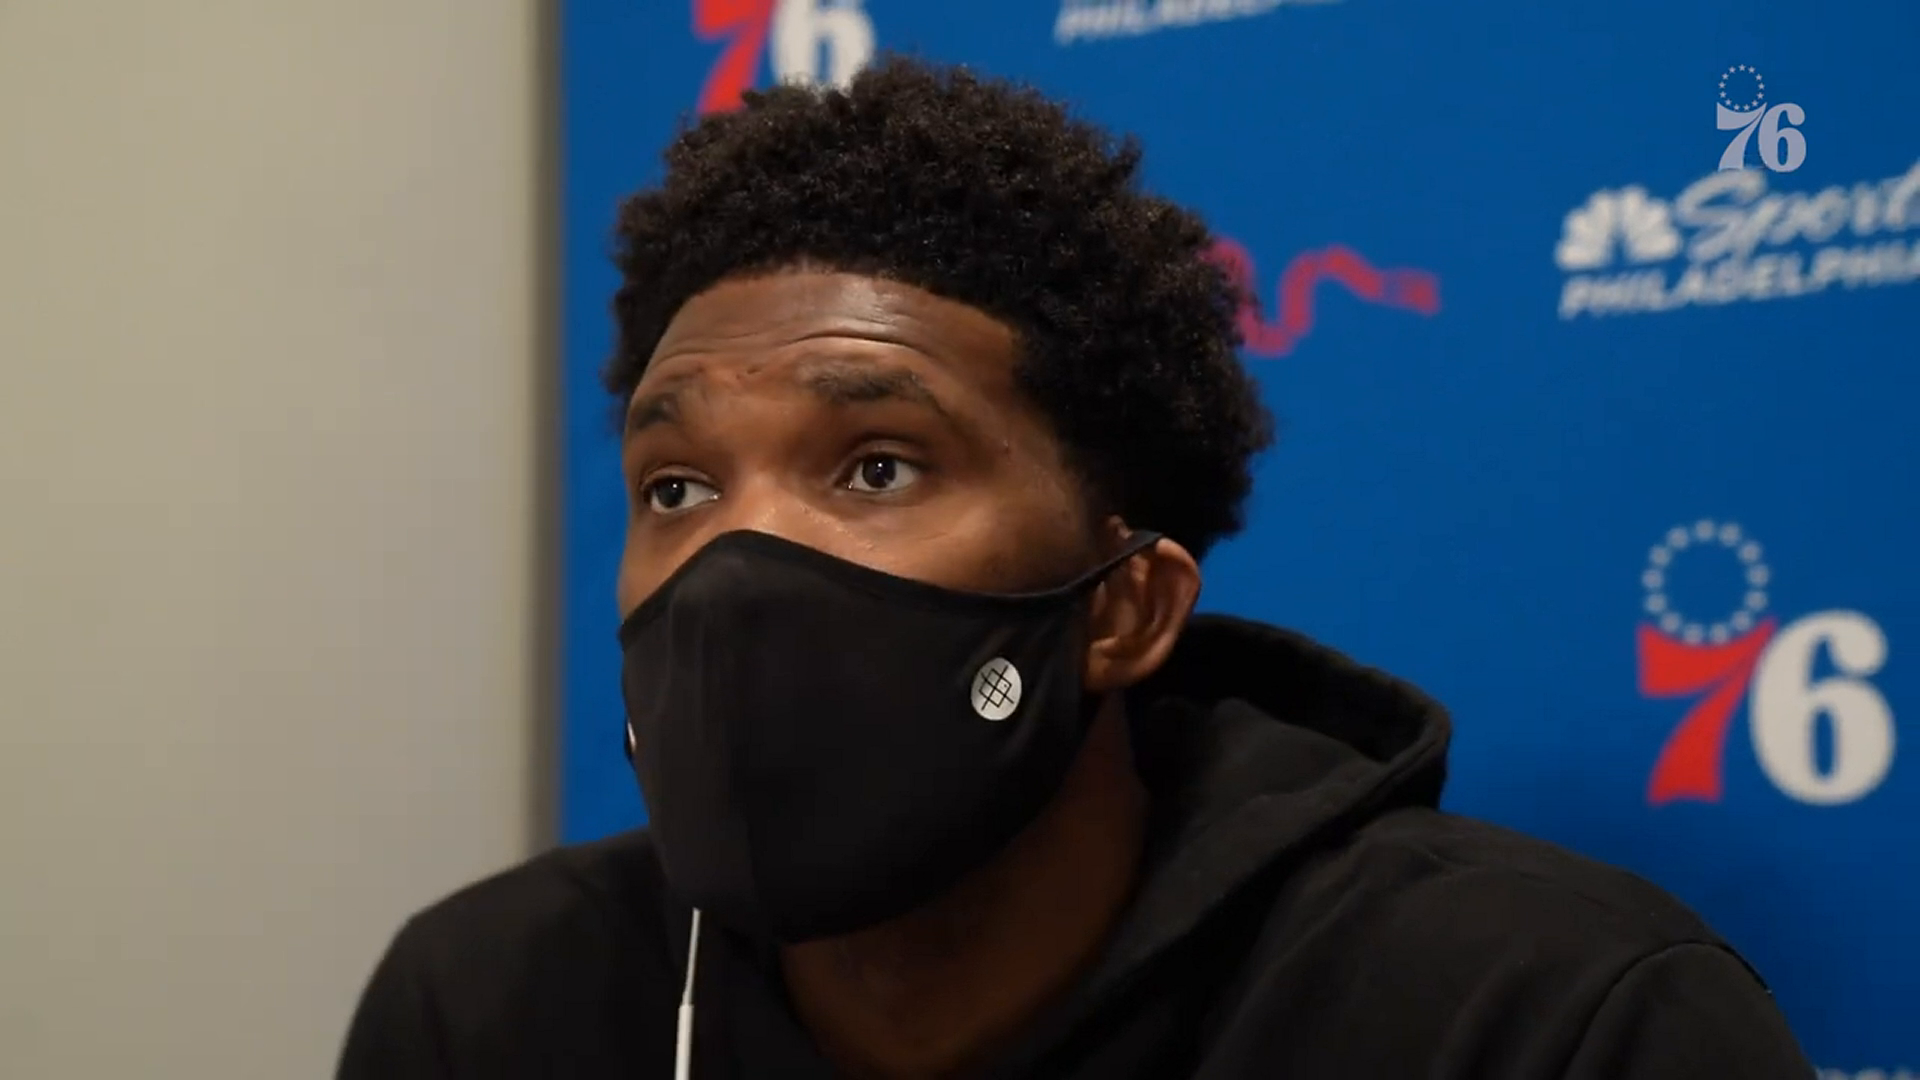 Joel Embiid | Postgame Media @ Boston Celtics (04.06.21)